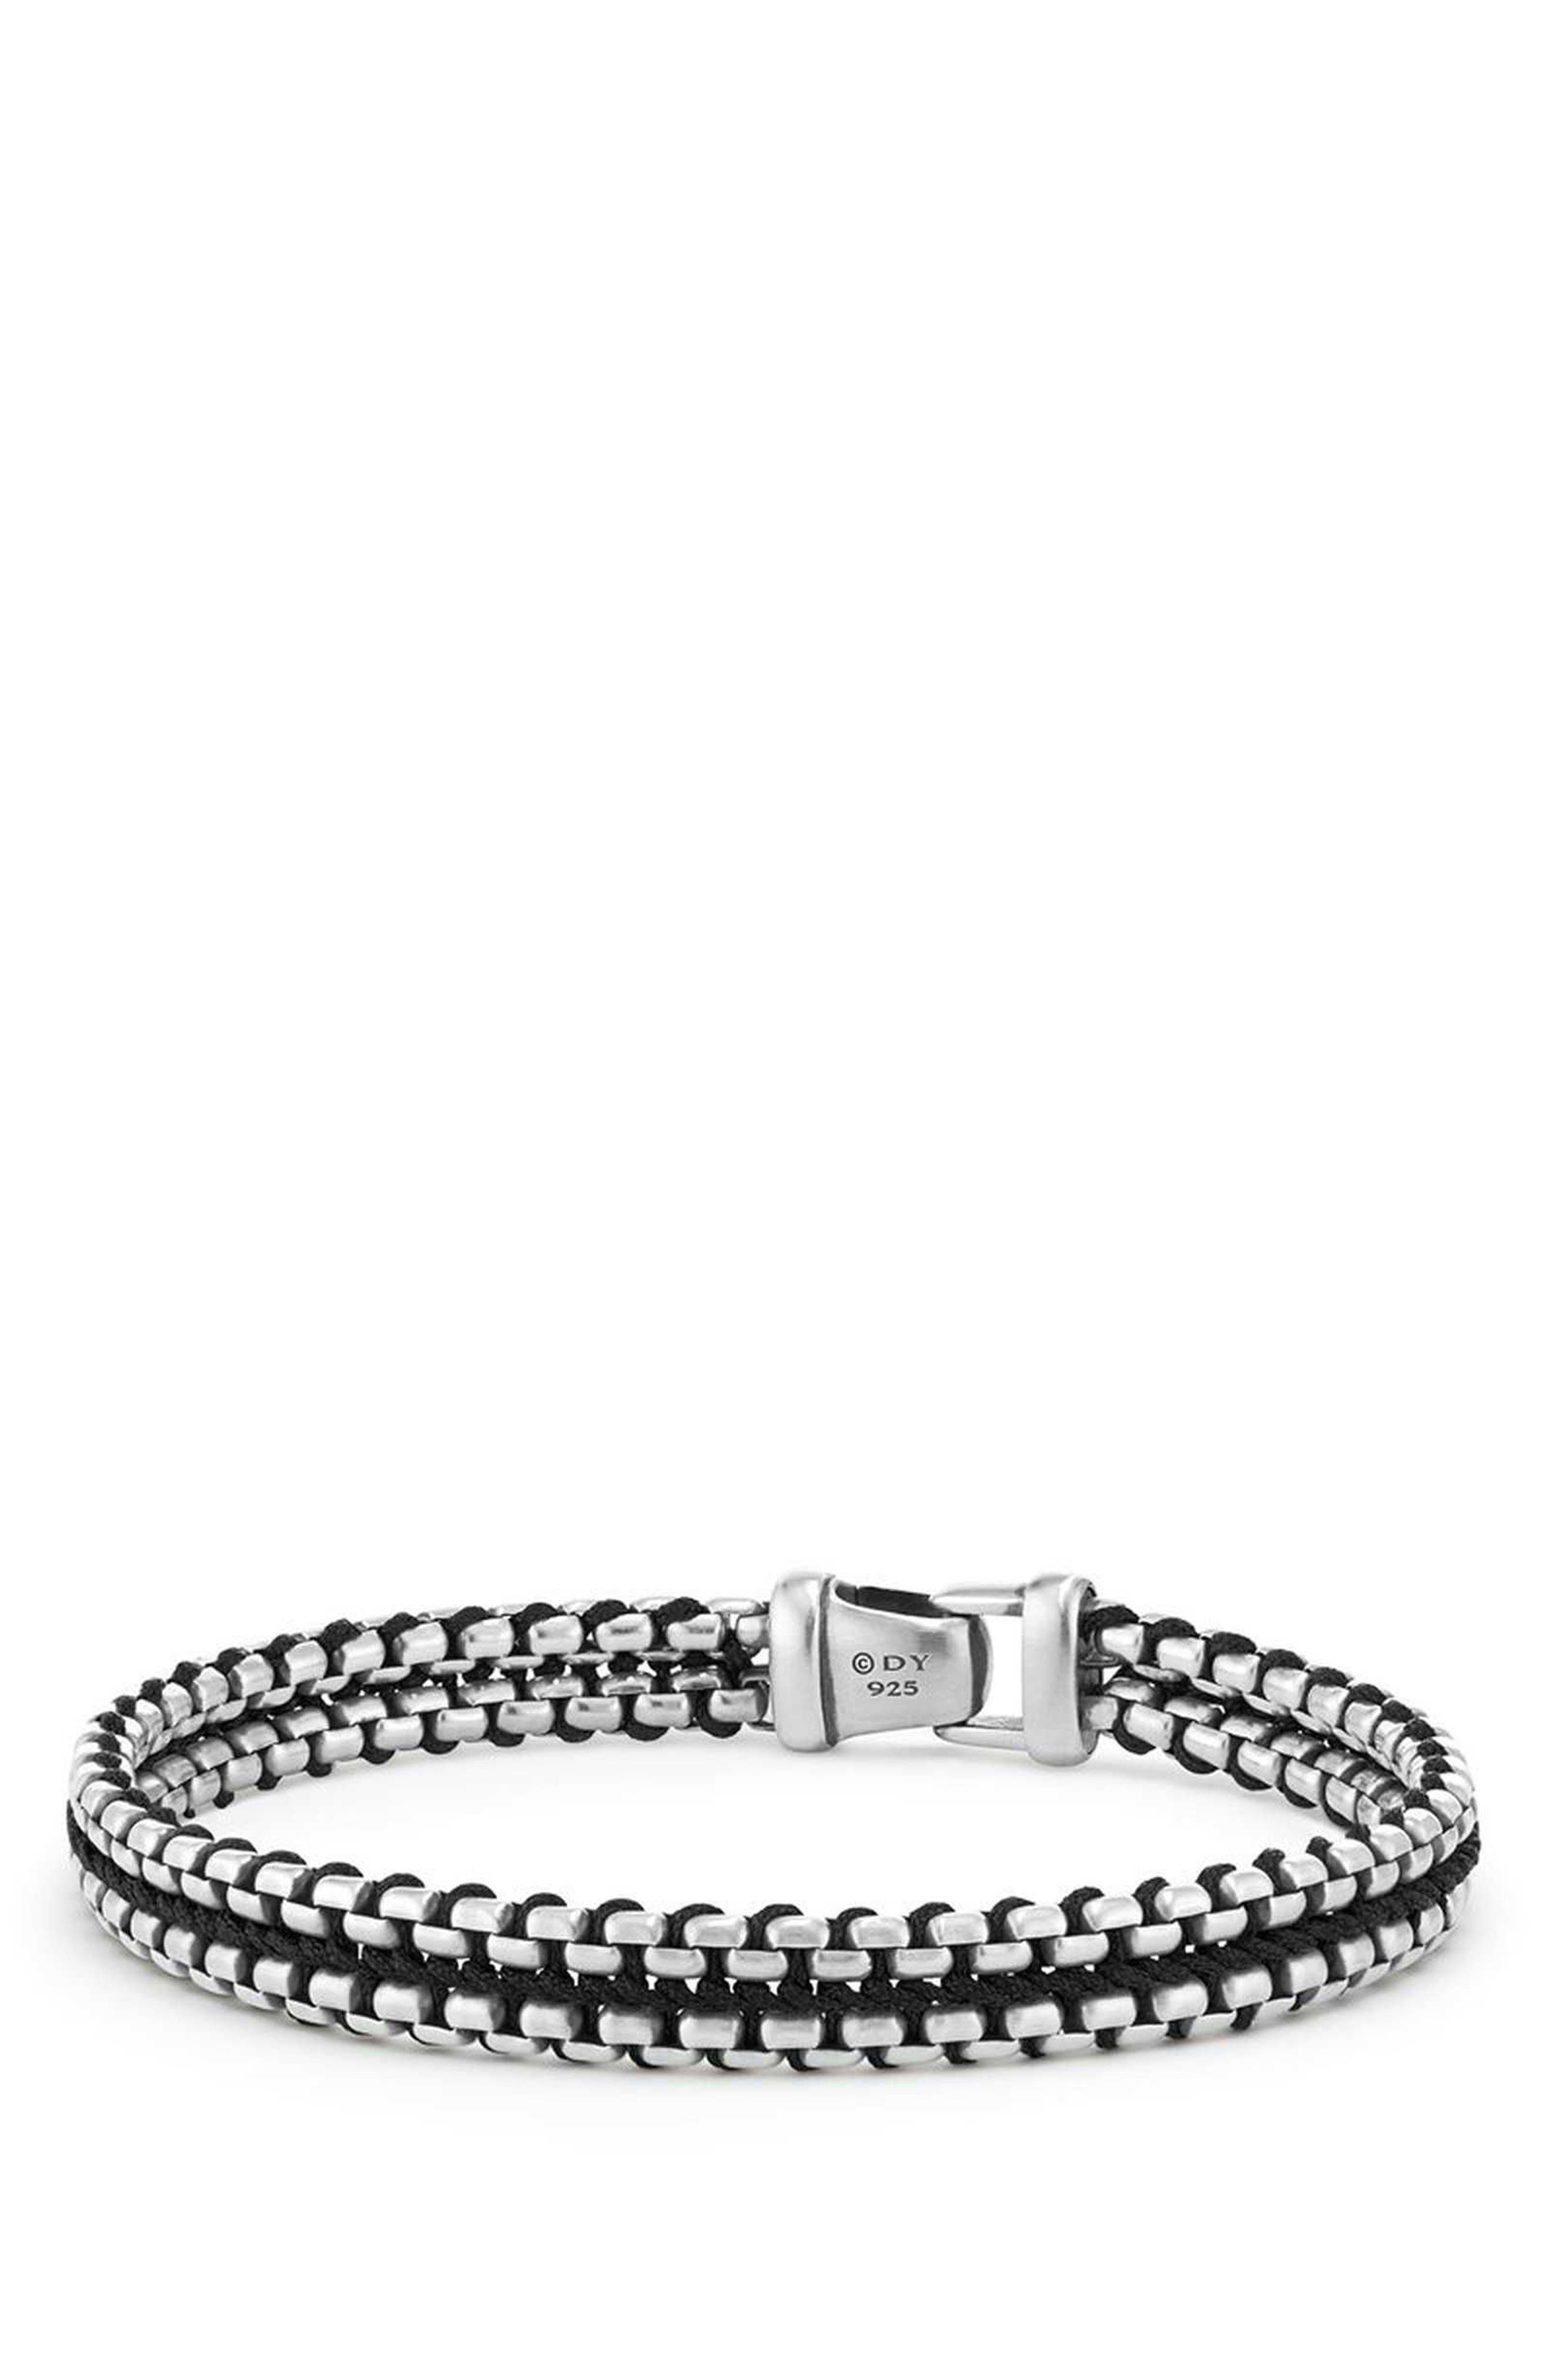 DAVID YURMAN Woven Box Chain Bracelet, Main, color, BLACK